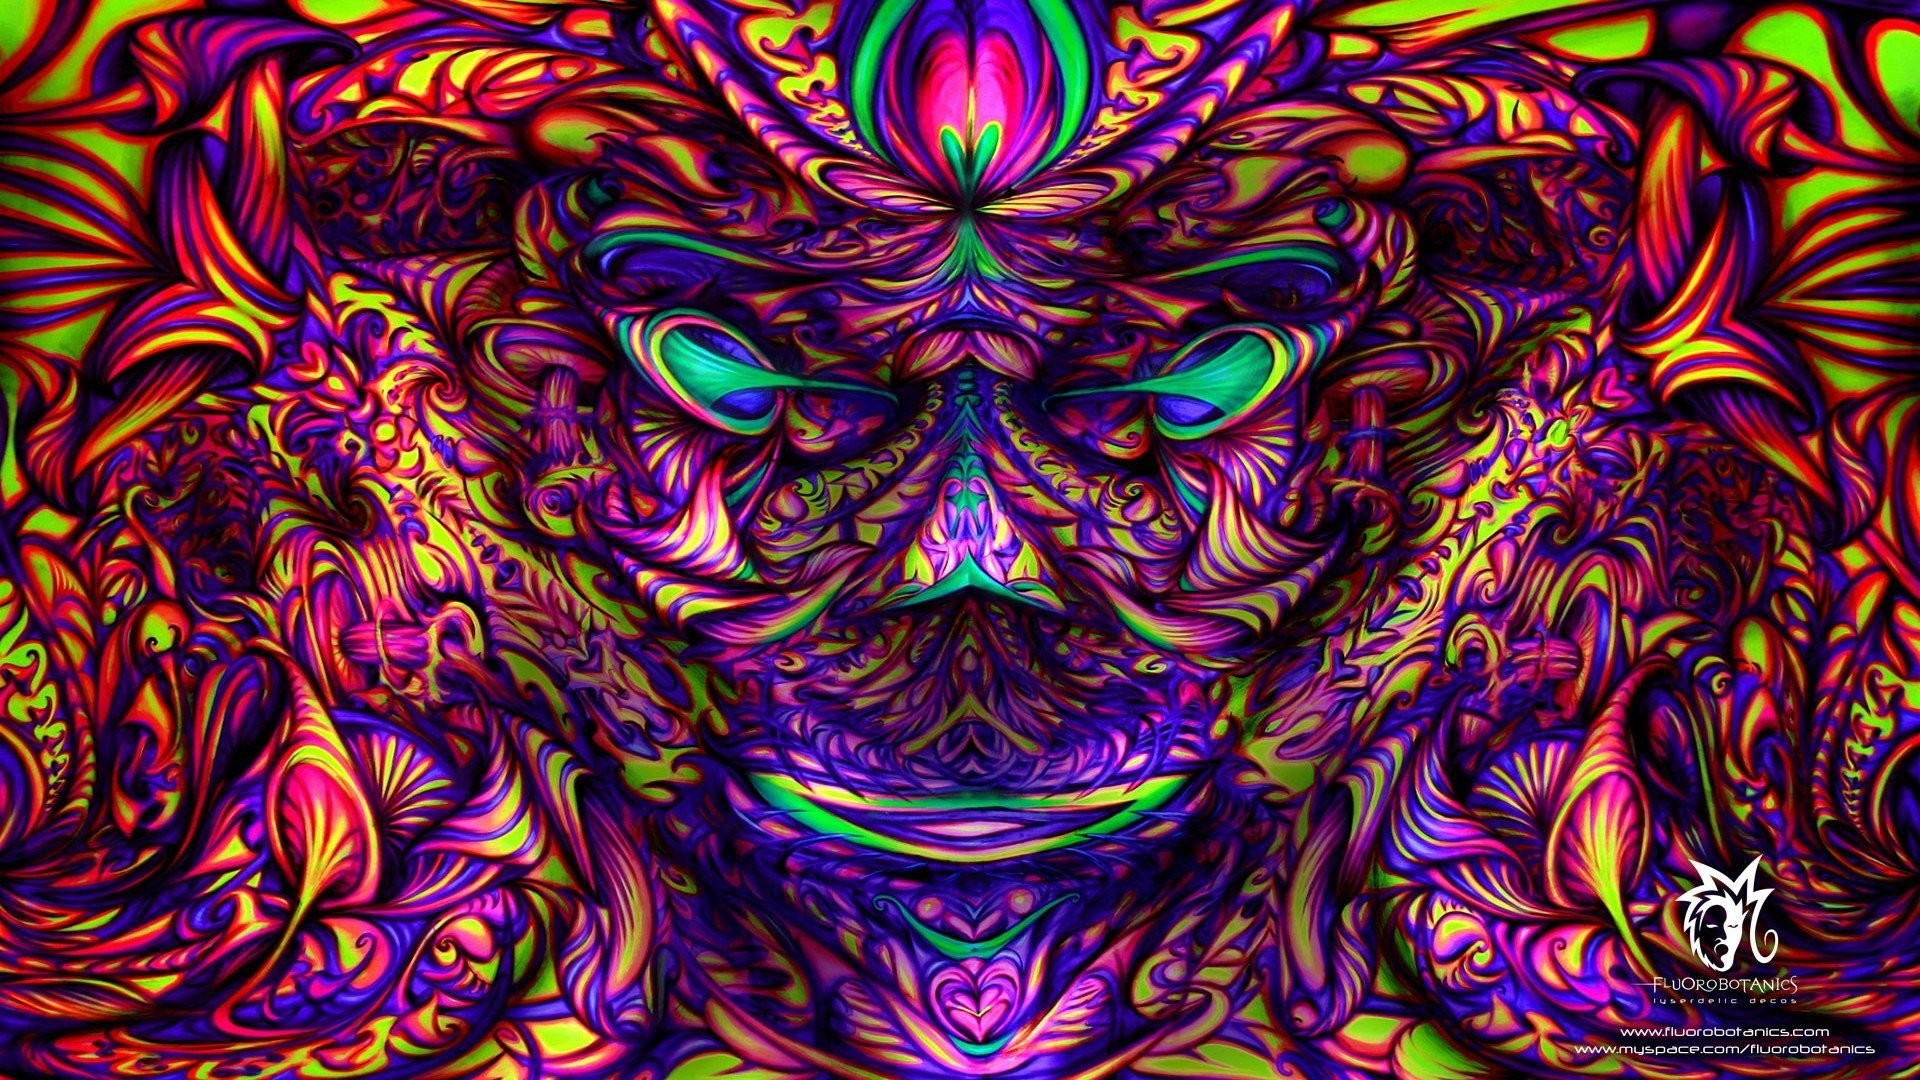 Trippy 4k wallpaper 53 images - Psychedelic wallpaper hd ...